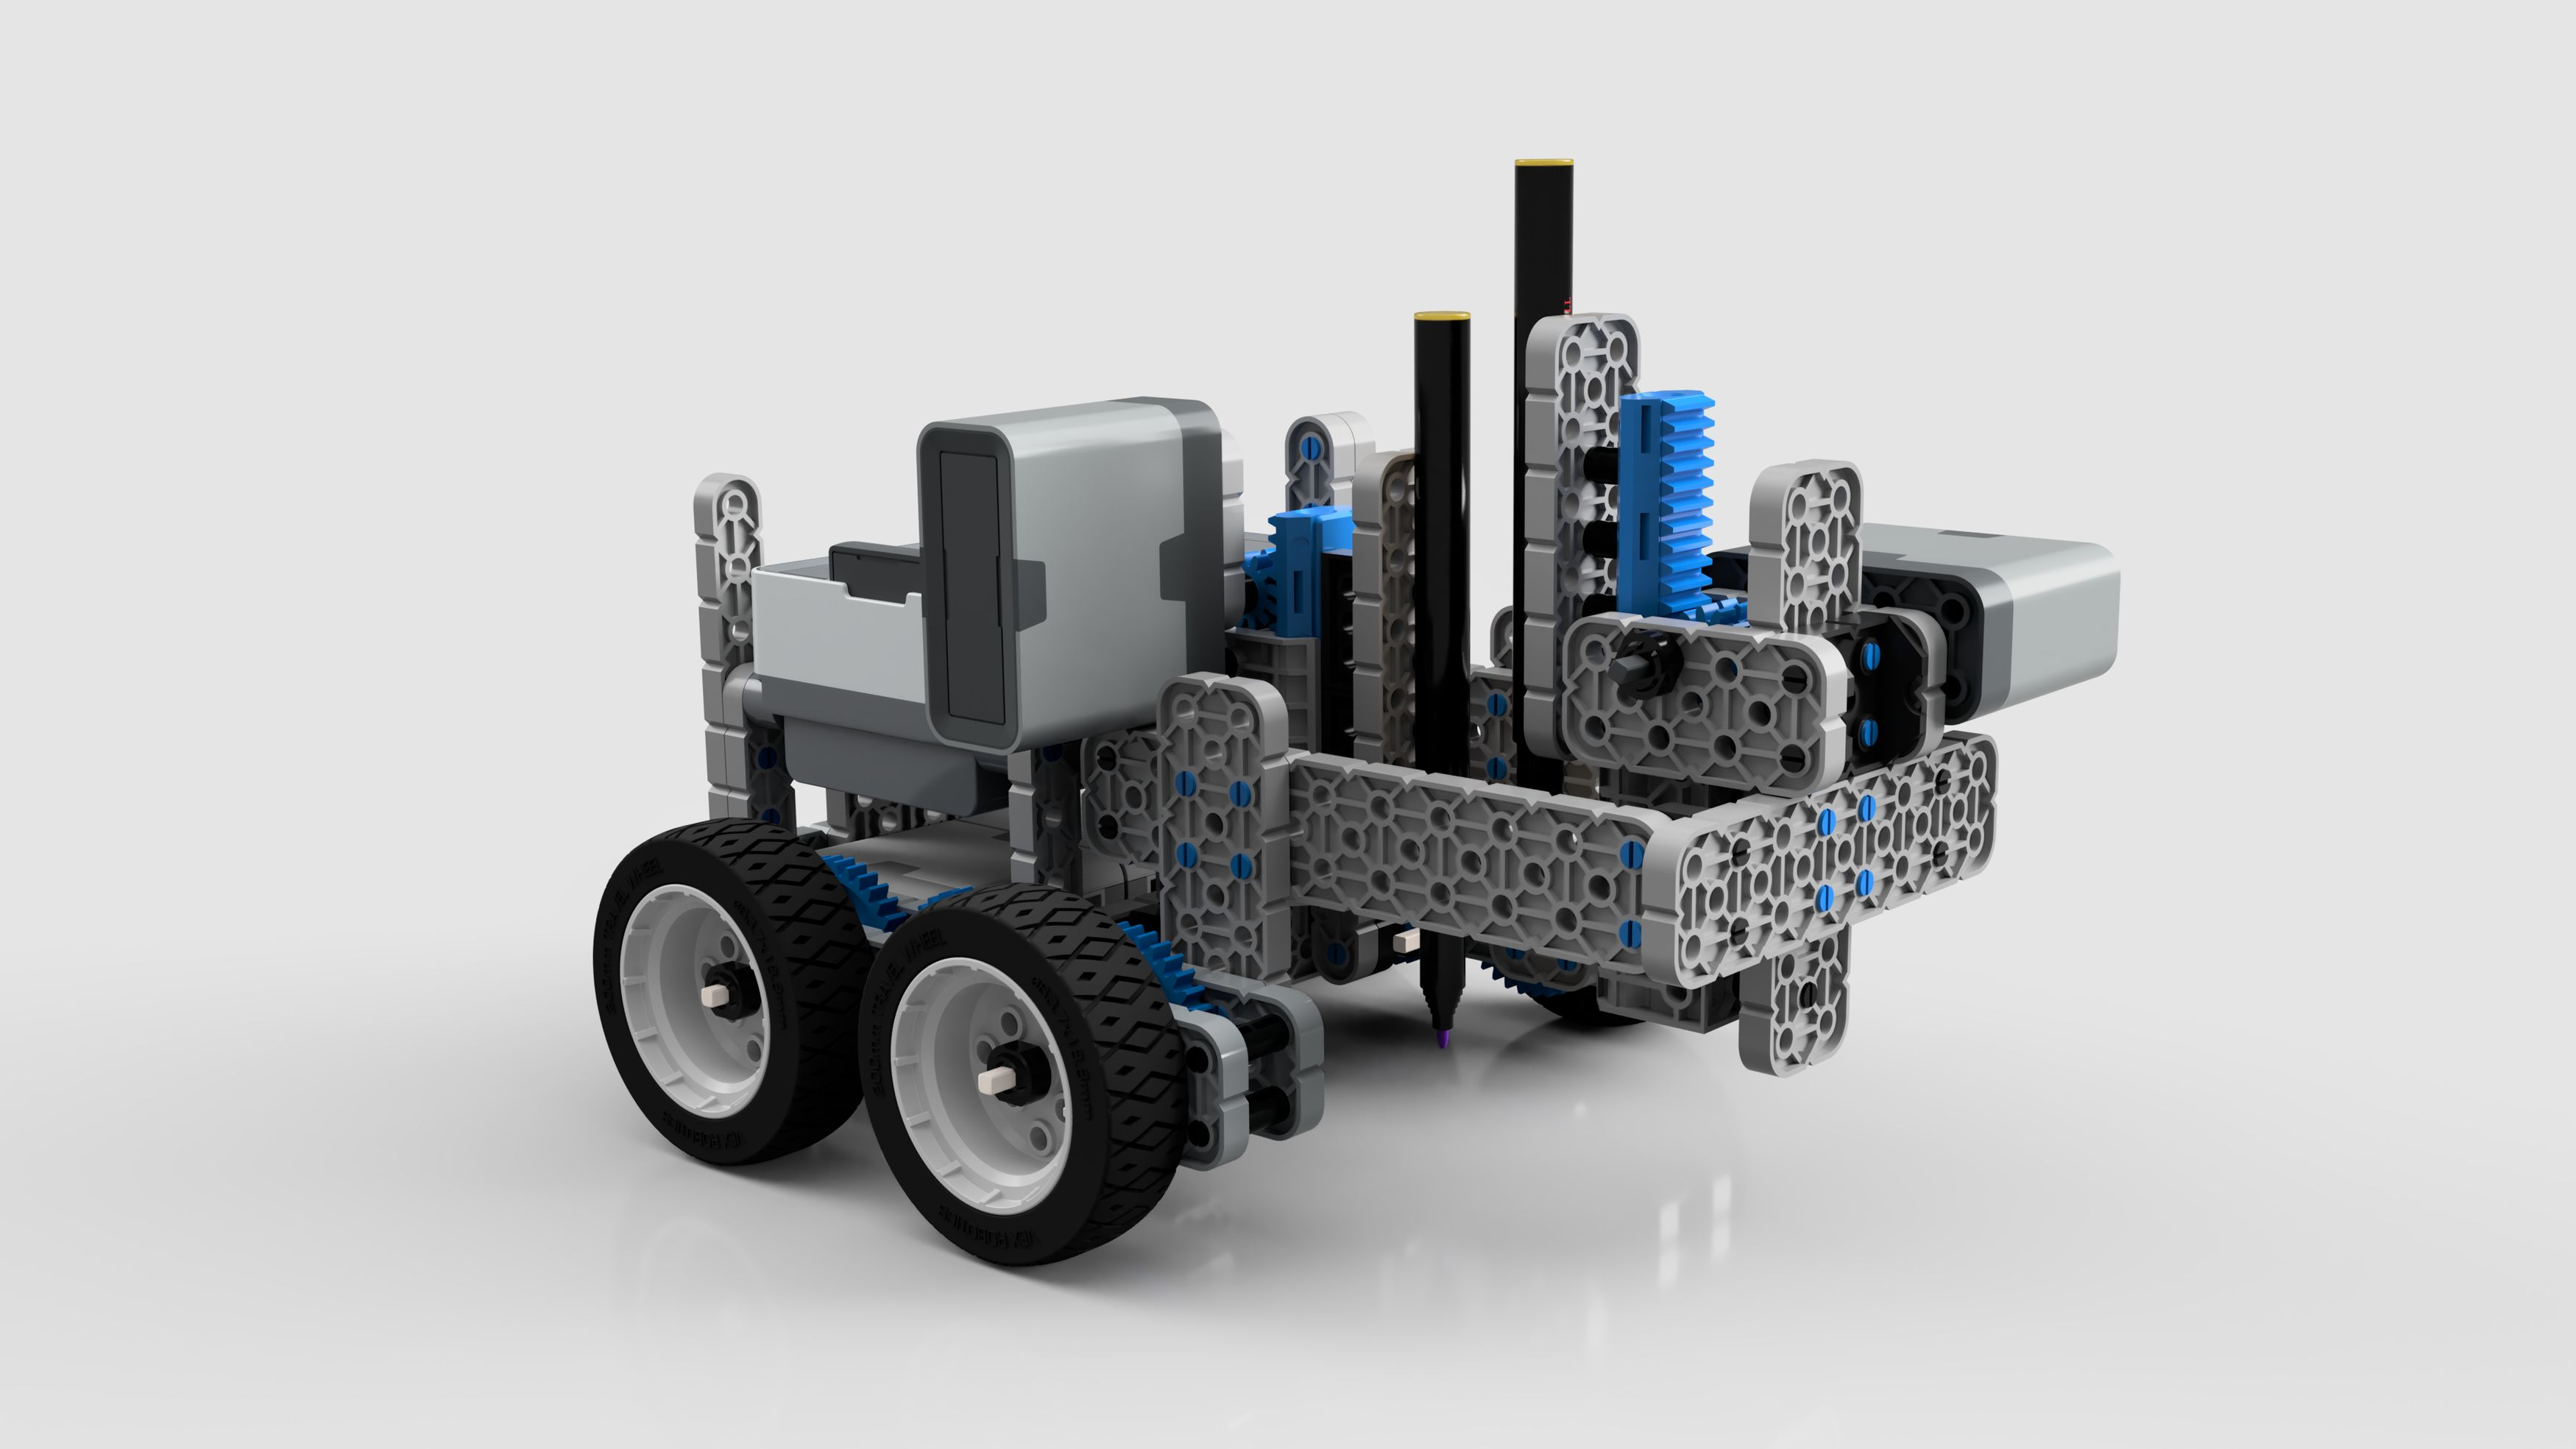 Vex-iq-robot-caneta-2020-may-24-05-58-45pm-000-customizedview4971468432-png-3500-3500